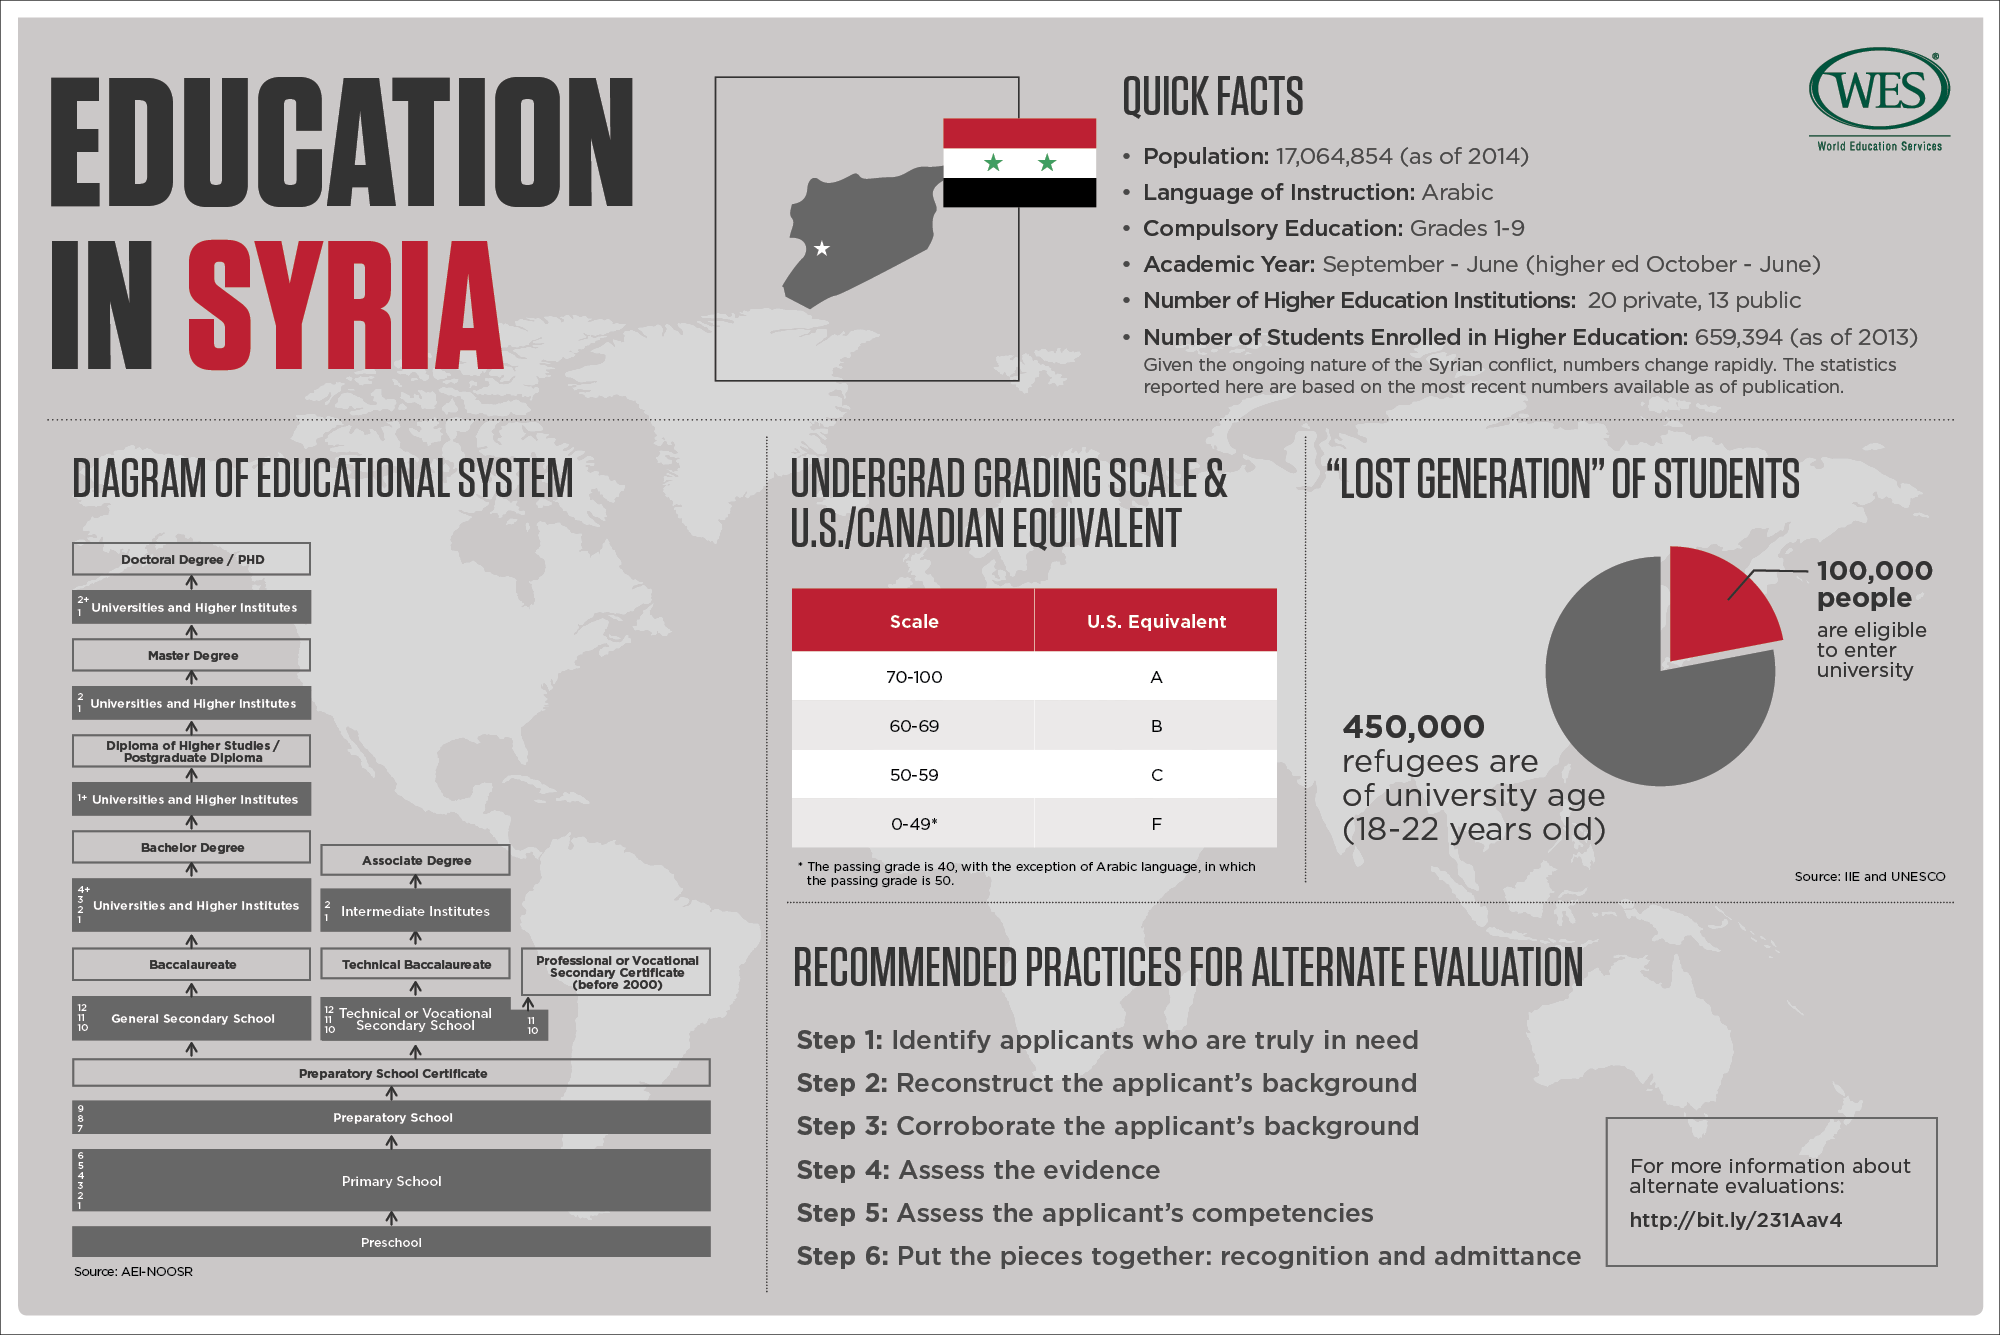 WENR-0416-Country Profile - Syria